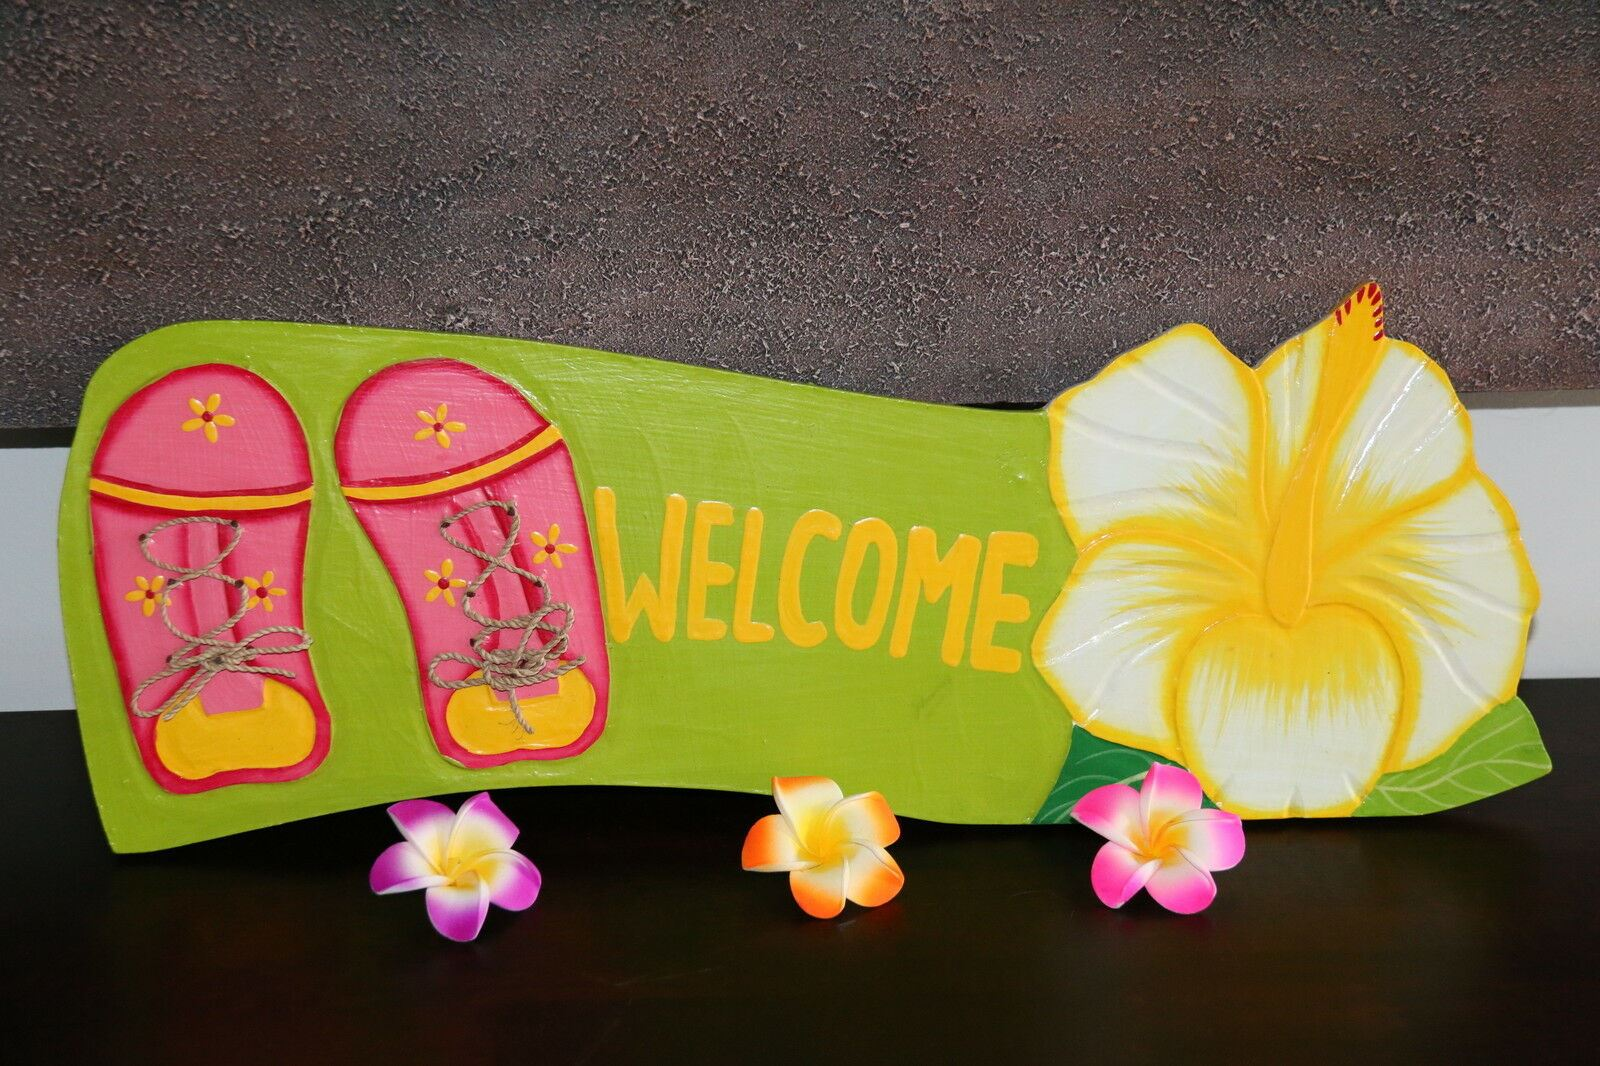 NEW Bali Hand Crafted WELCOME Sign -  Many Colours - Tropical Design FREEPOST!!